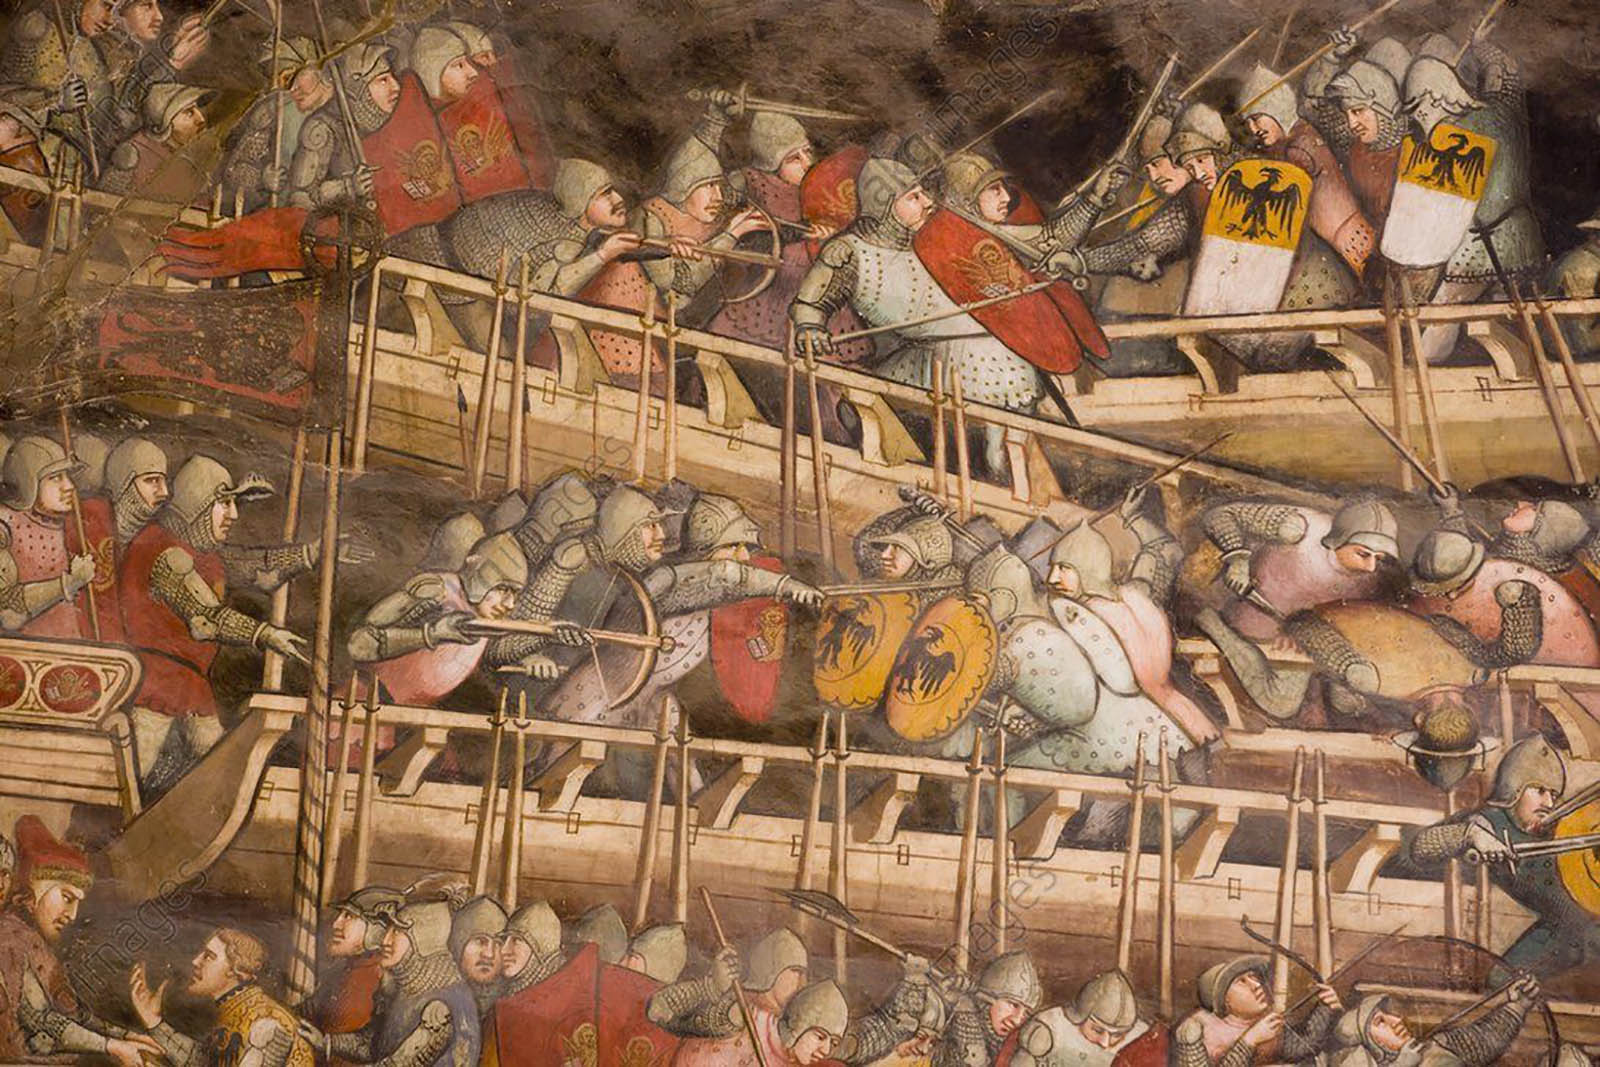 Fragment_from_Naval_Battle_of_Punta_San_Salvatore_by_Spinello_Aretino_XIV_century